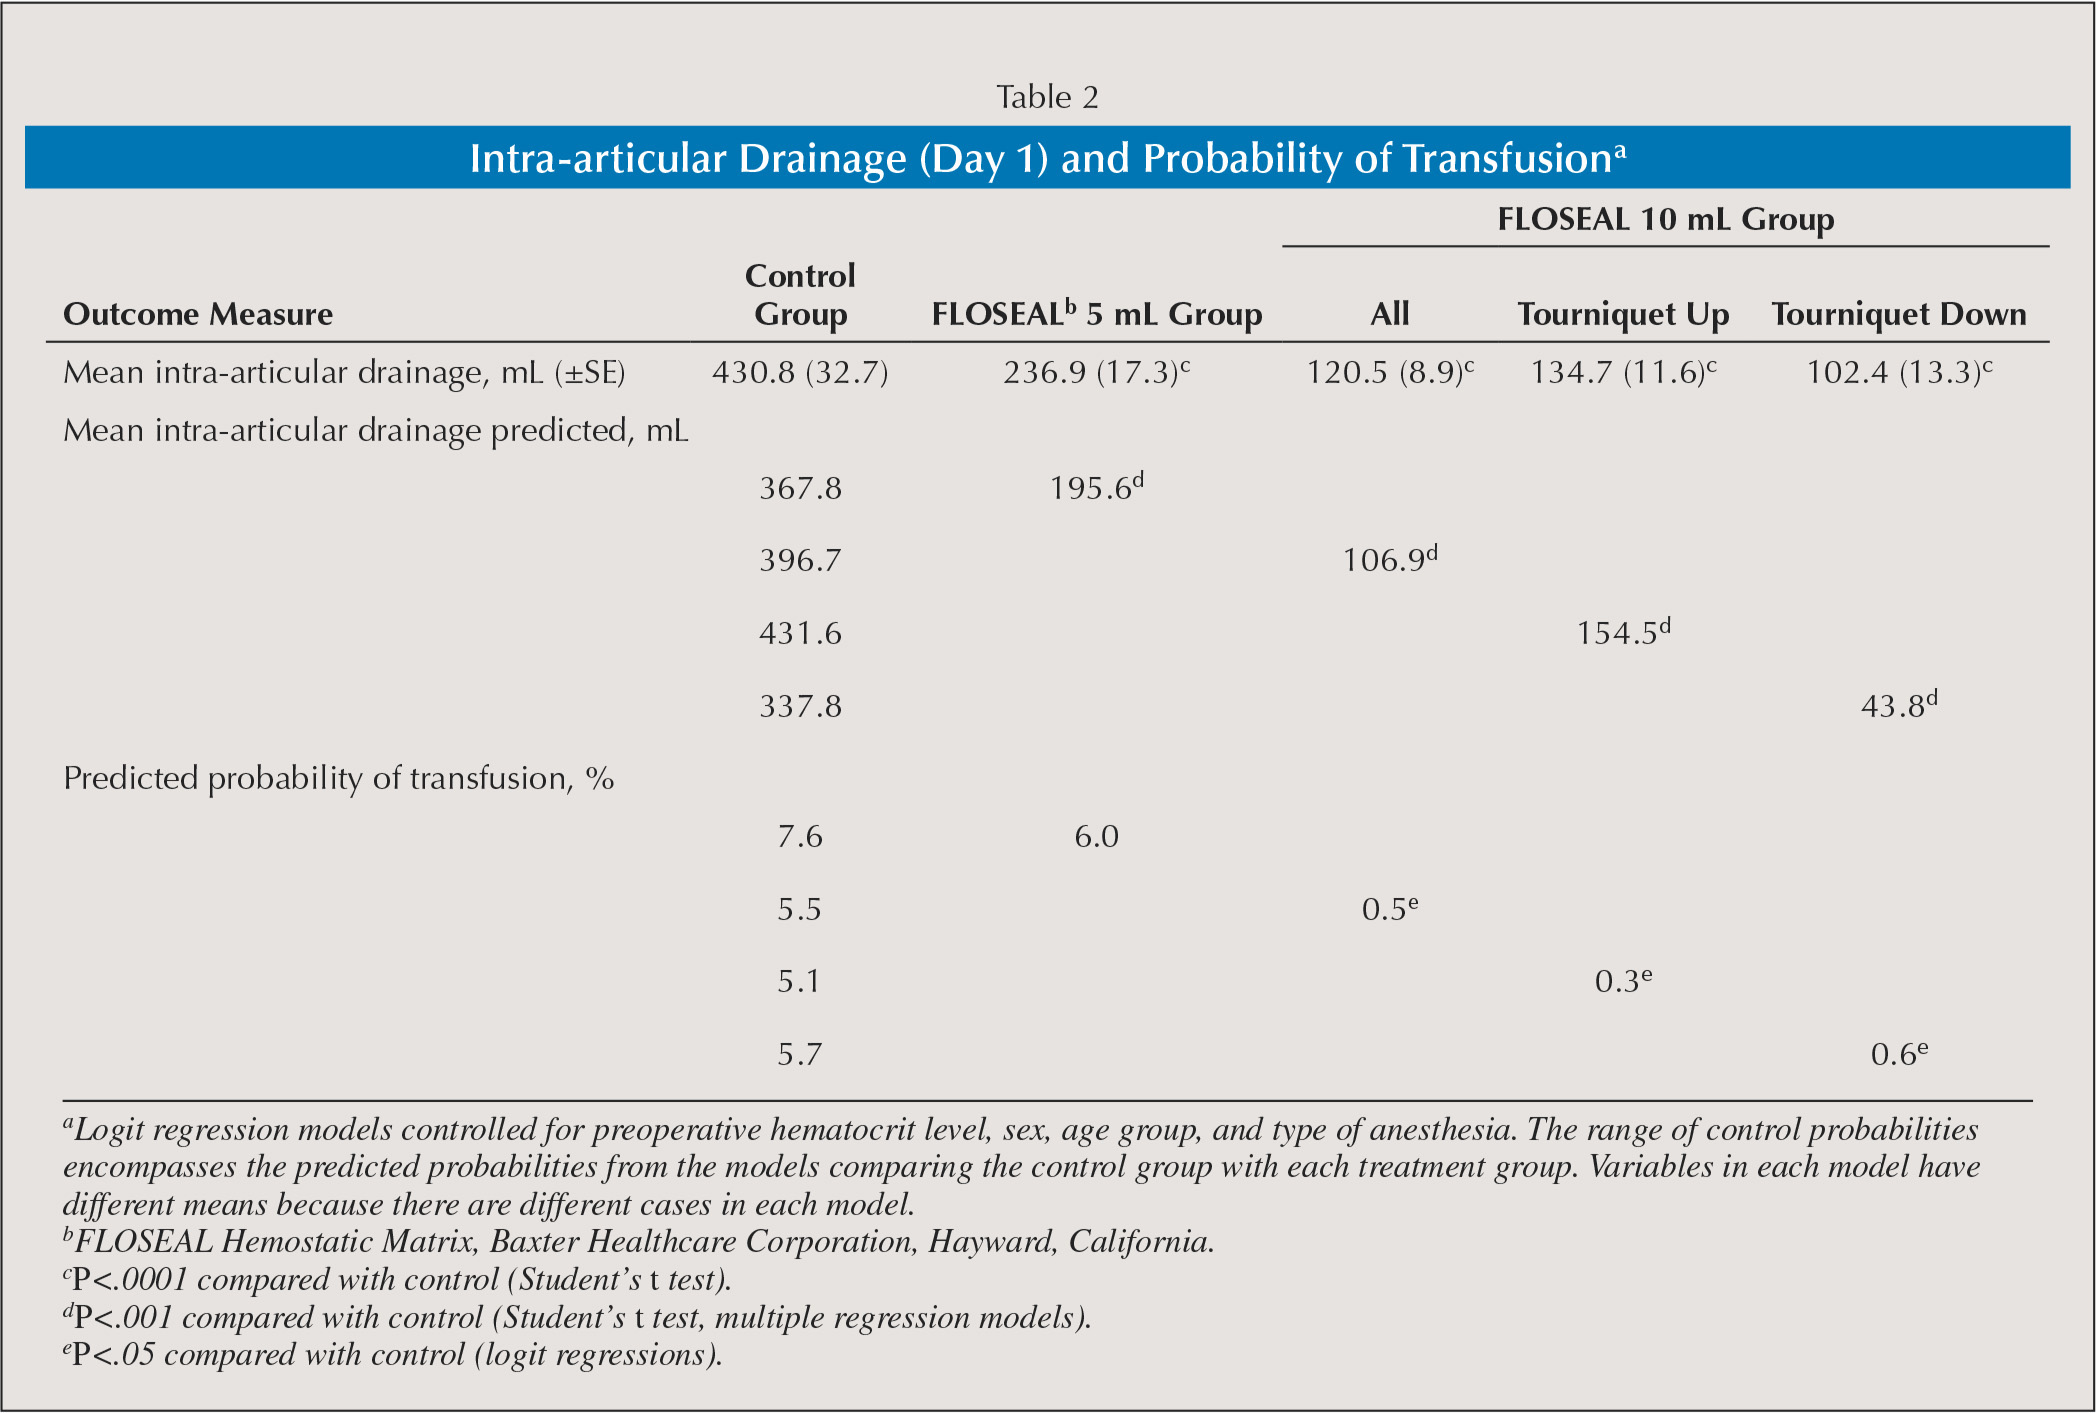 Intra-articular Drainage (Day 1) and Probability of Transfusiona